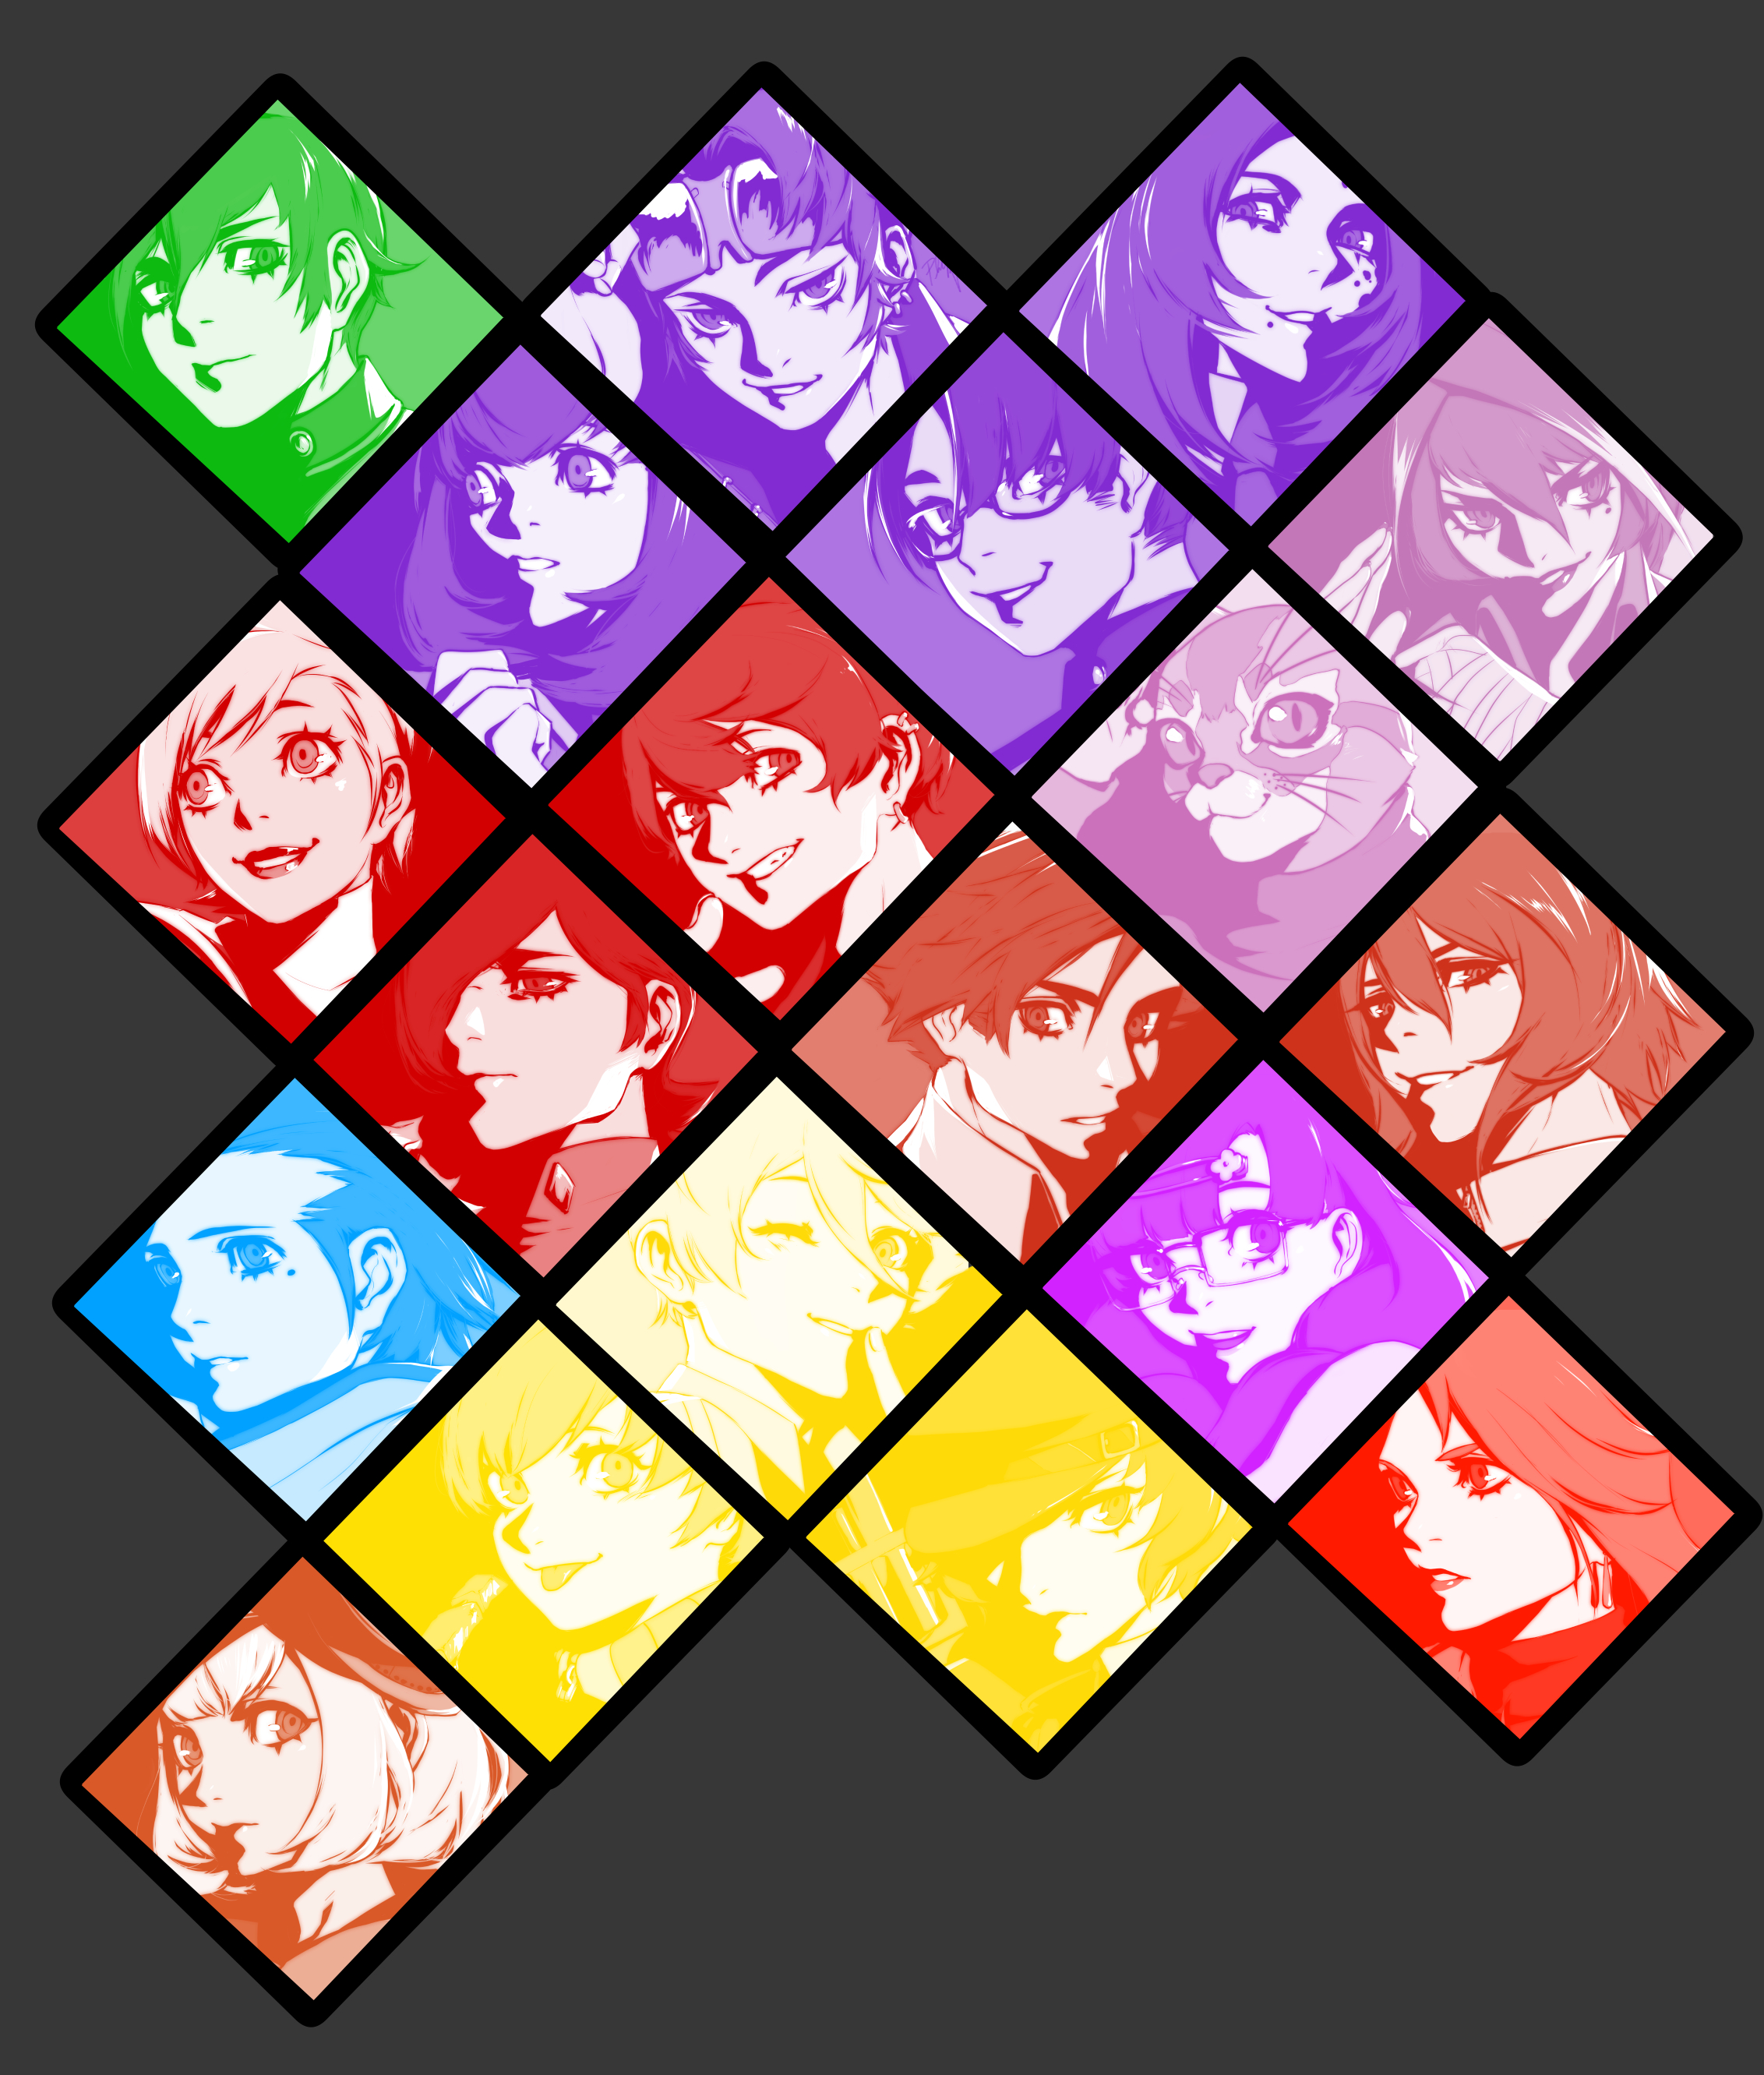 Compilation of drawings of Persona characters, Choose Your Fighter! Who's ur fav, who do u wanna see